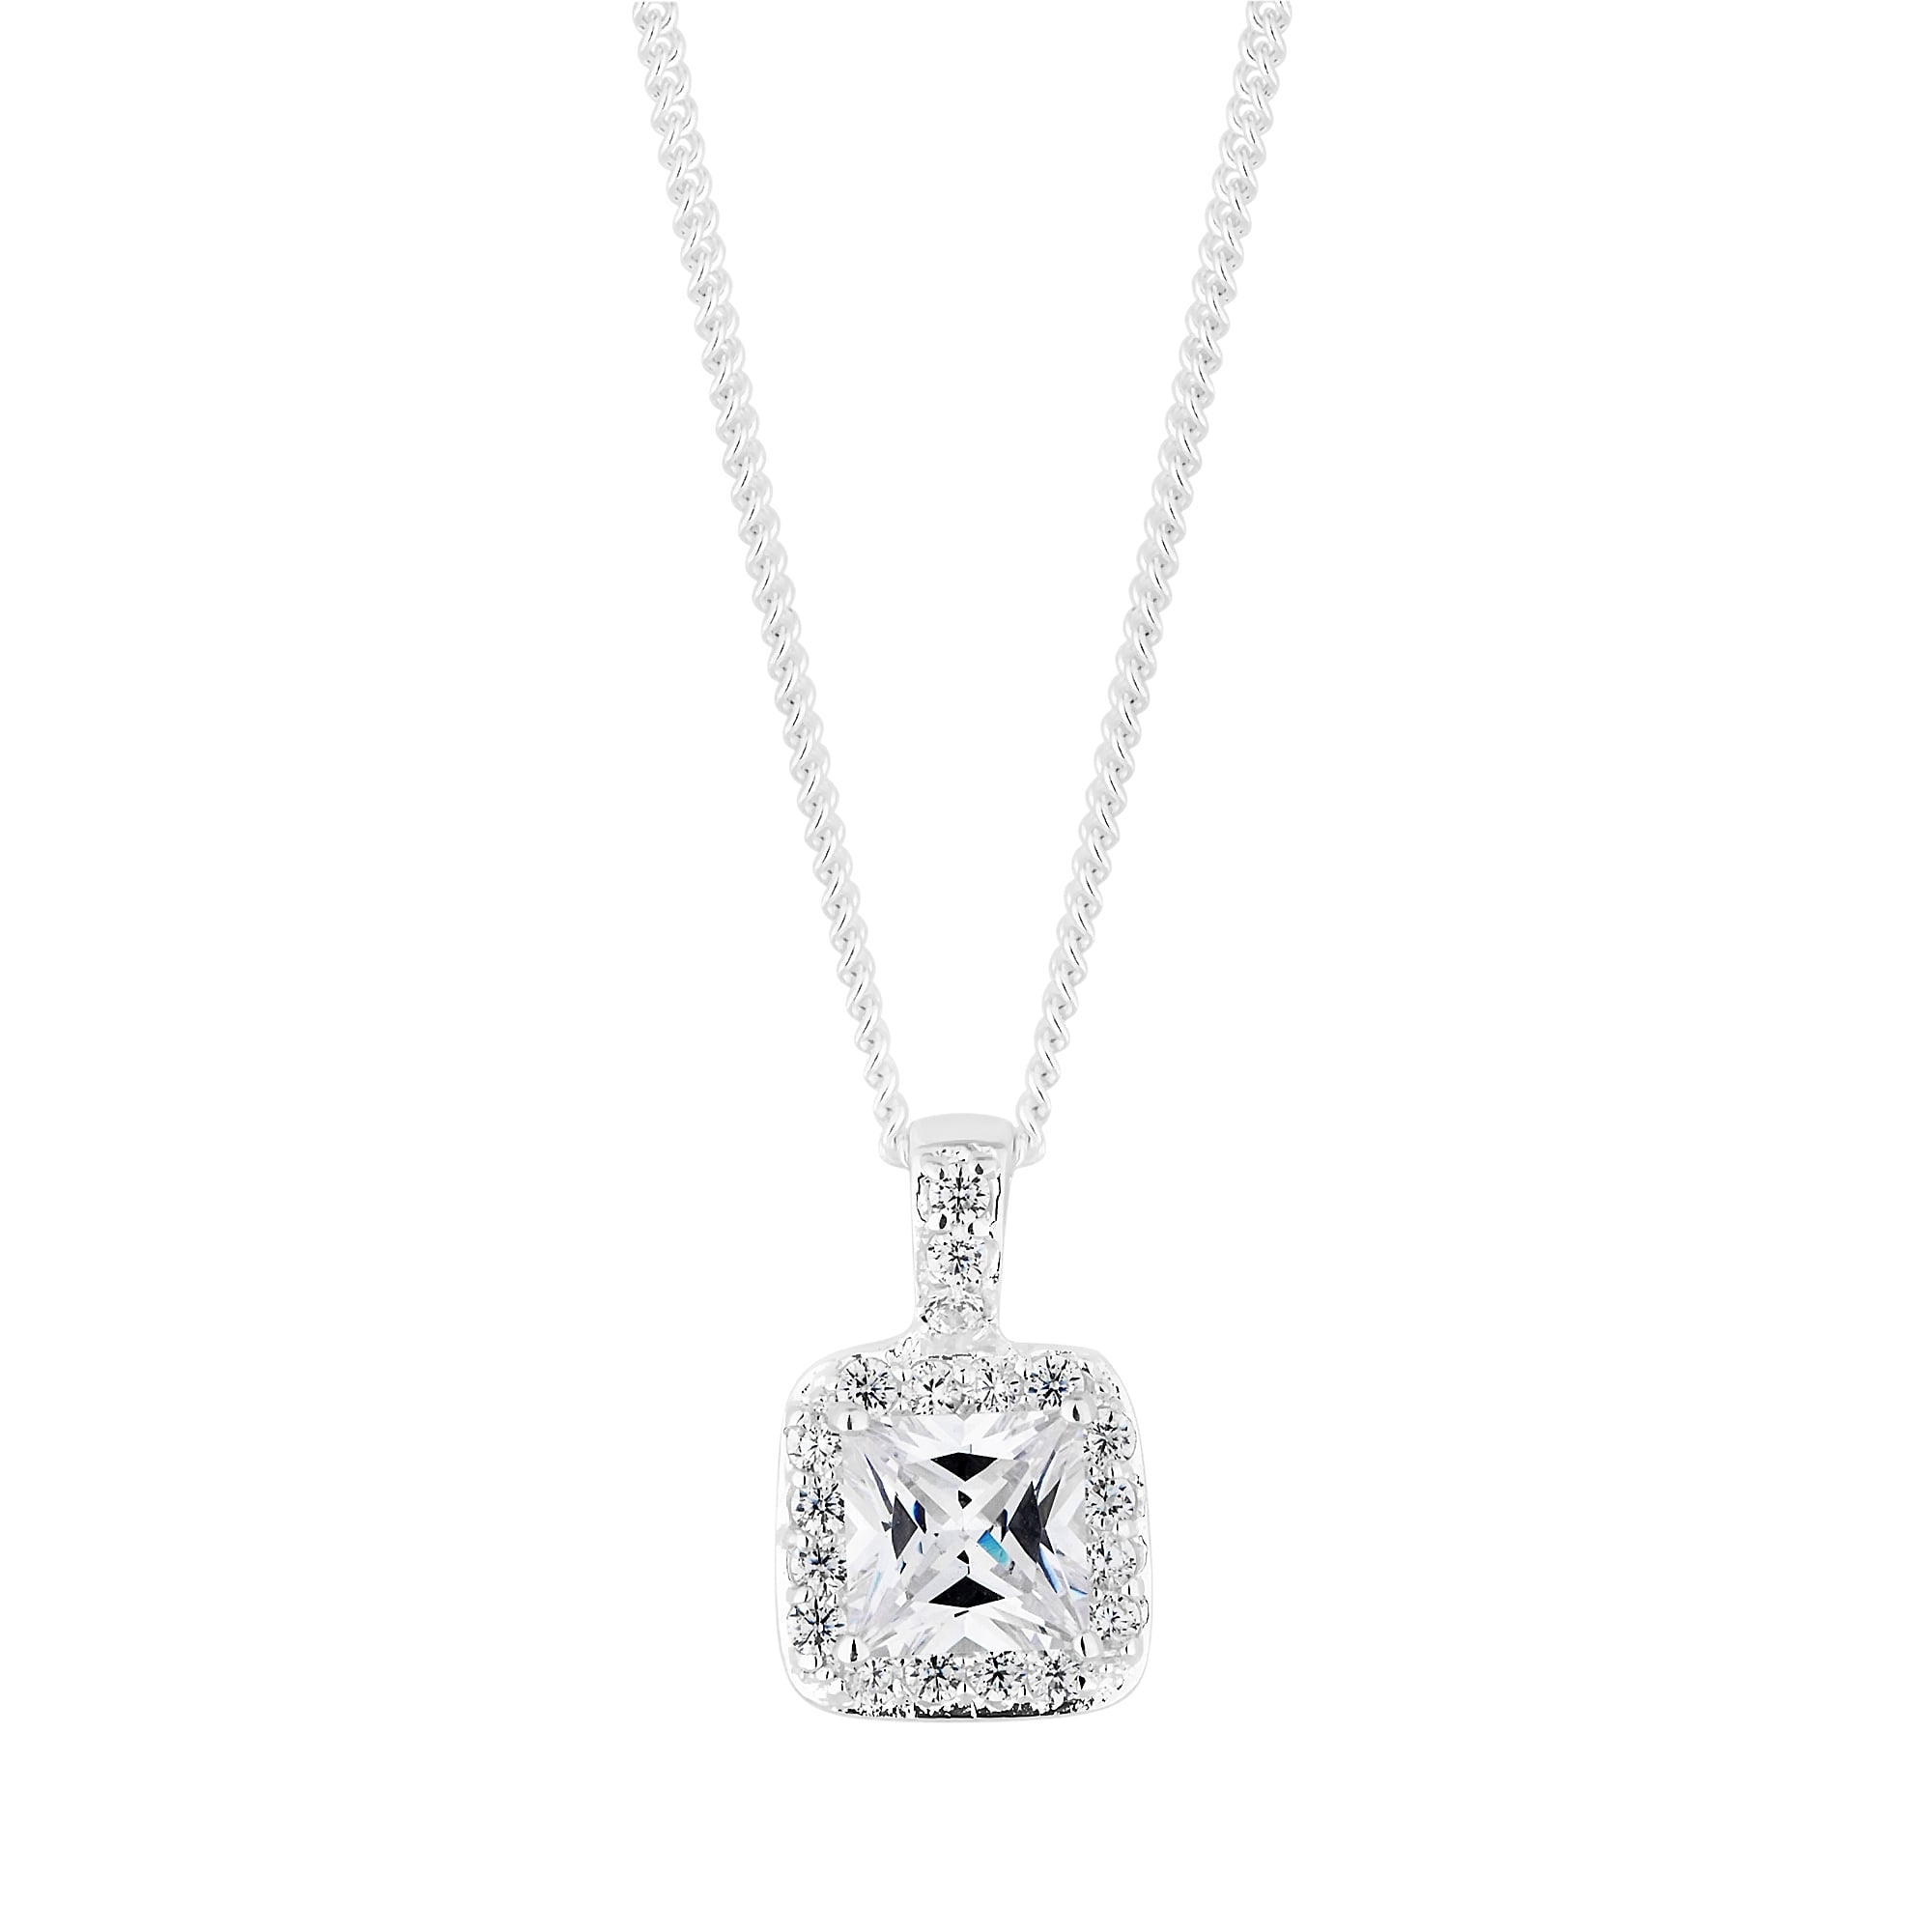 Sterling Silver 925 Cubic Zirconia Square Shaped Halo Pendant Necklace Within Best And Newest Square Sparkle Halo Pendant Necklaces (Gallery 1 of 25)